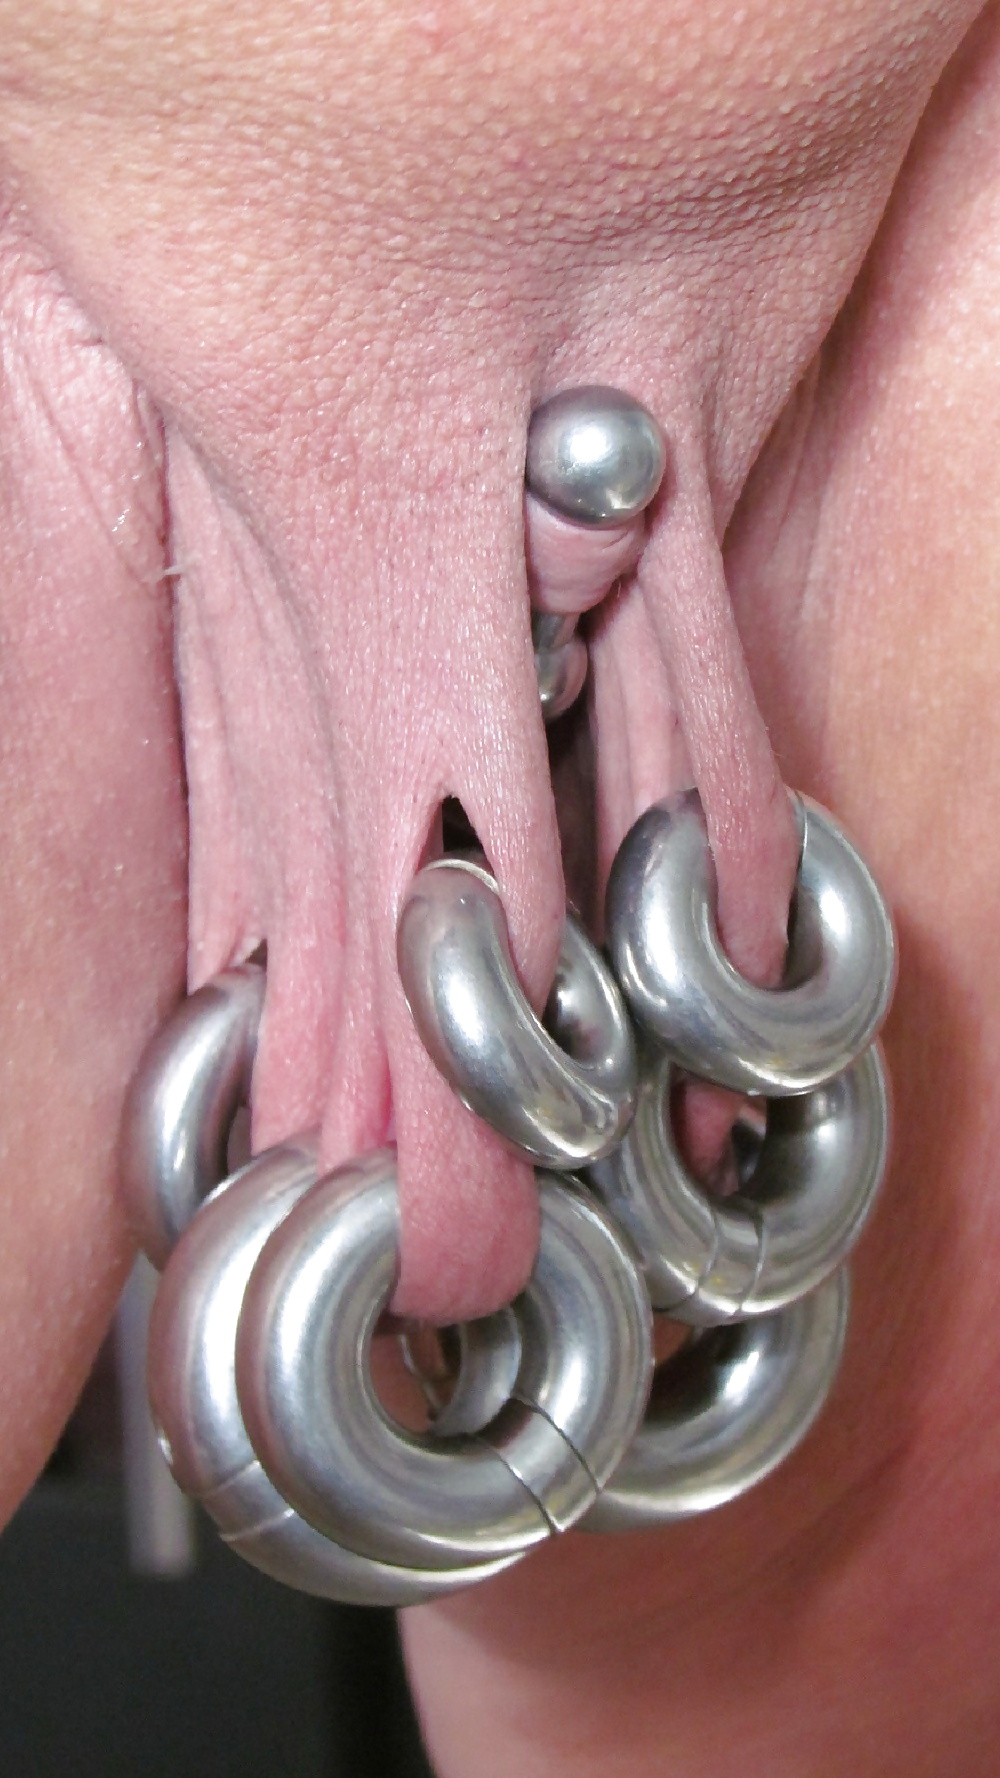 Pussy piercing on camera — photo 5